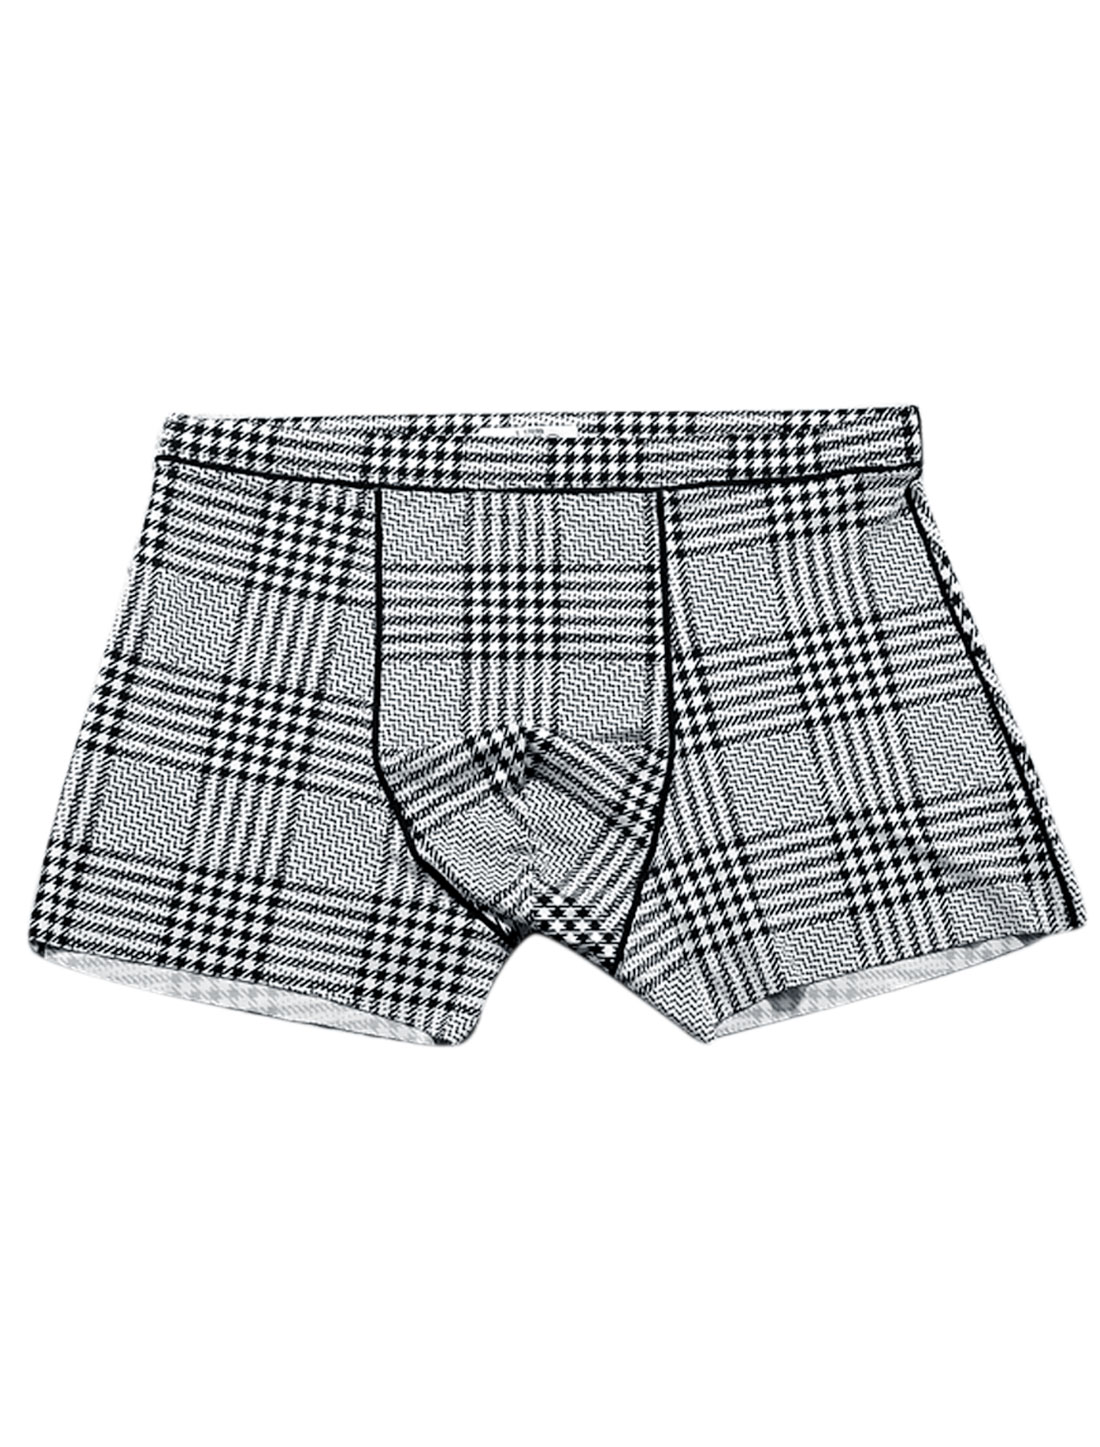 Men Houndstooth Plaids Pattern Stretchy Boxer Brief White Black W30